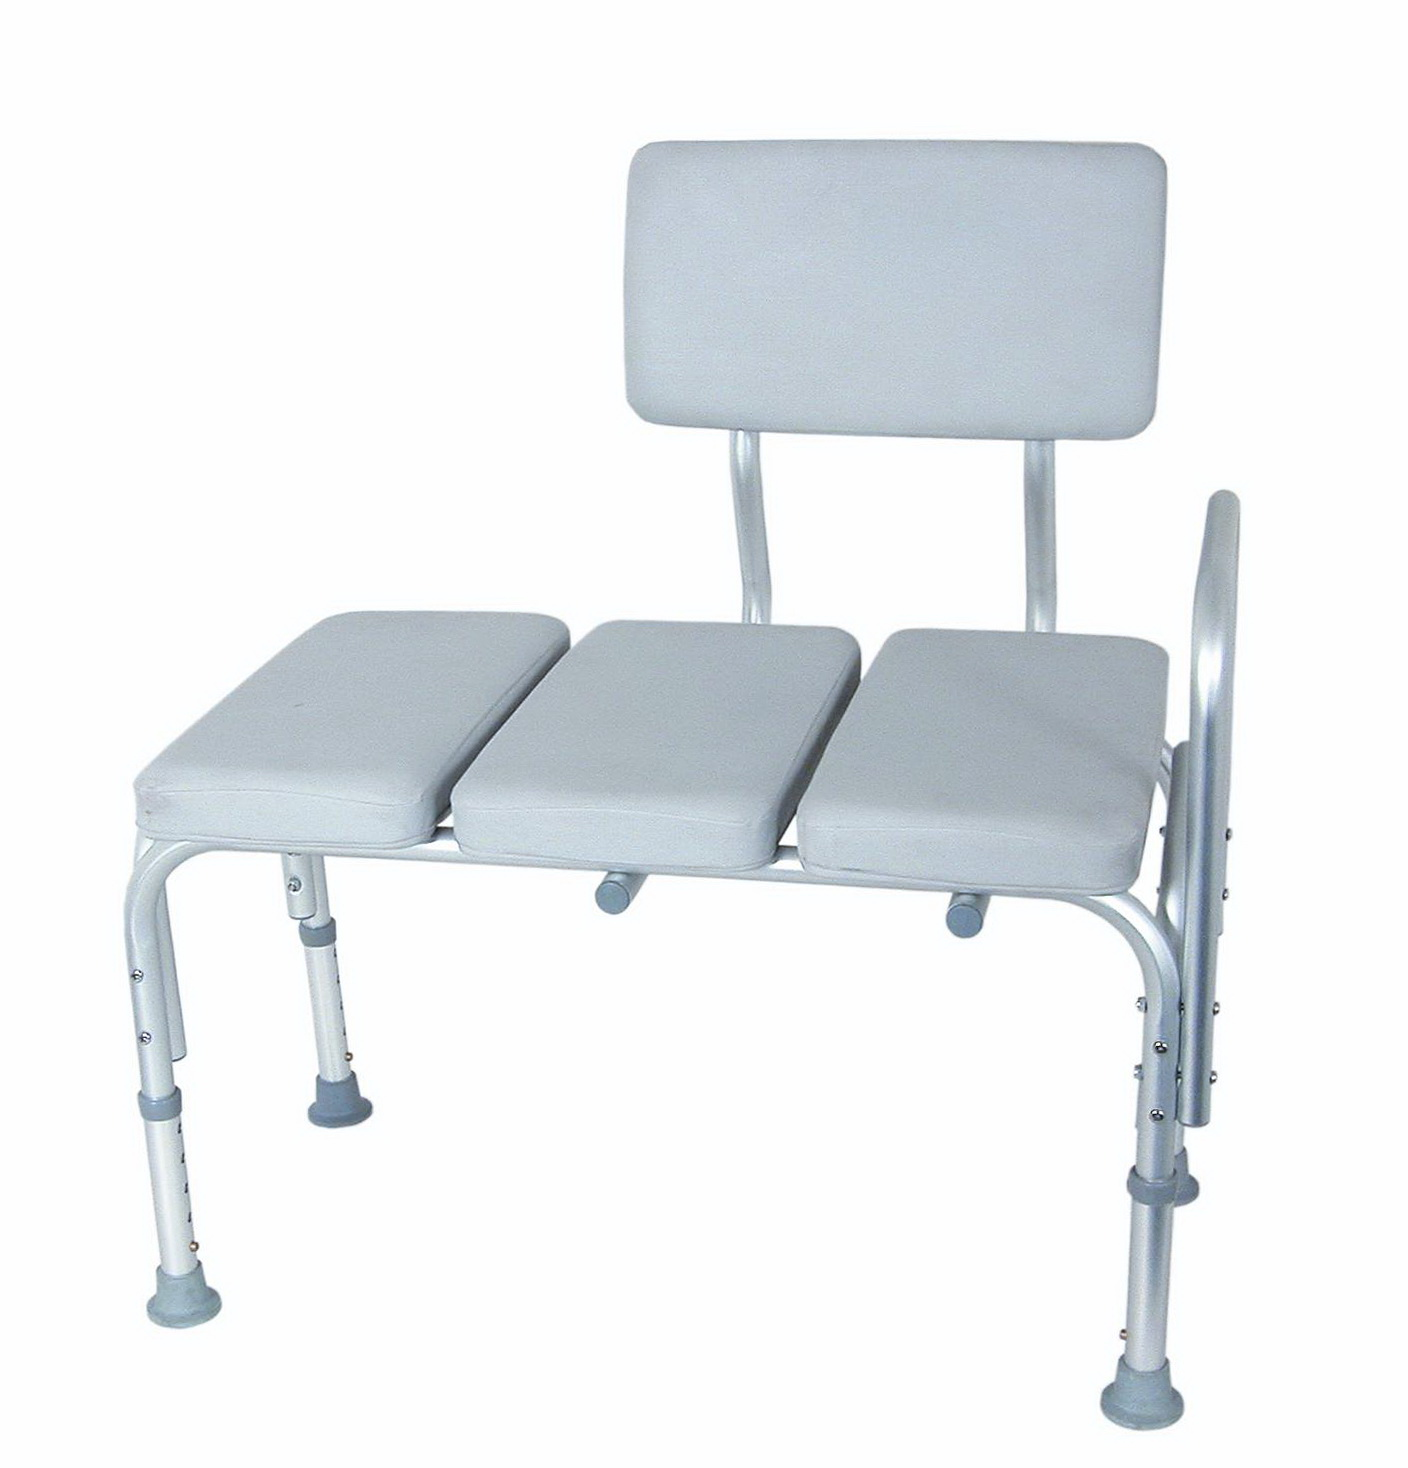 Tub Shower Transfer Bench